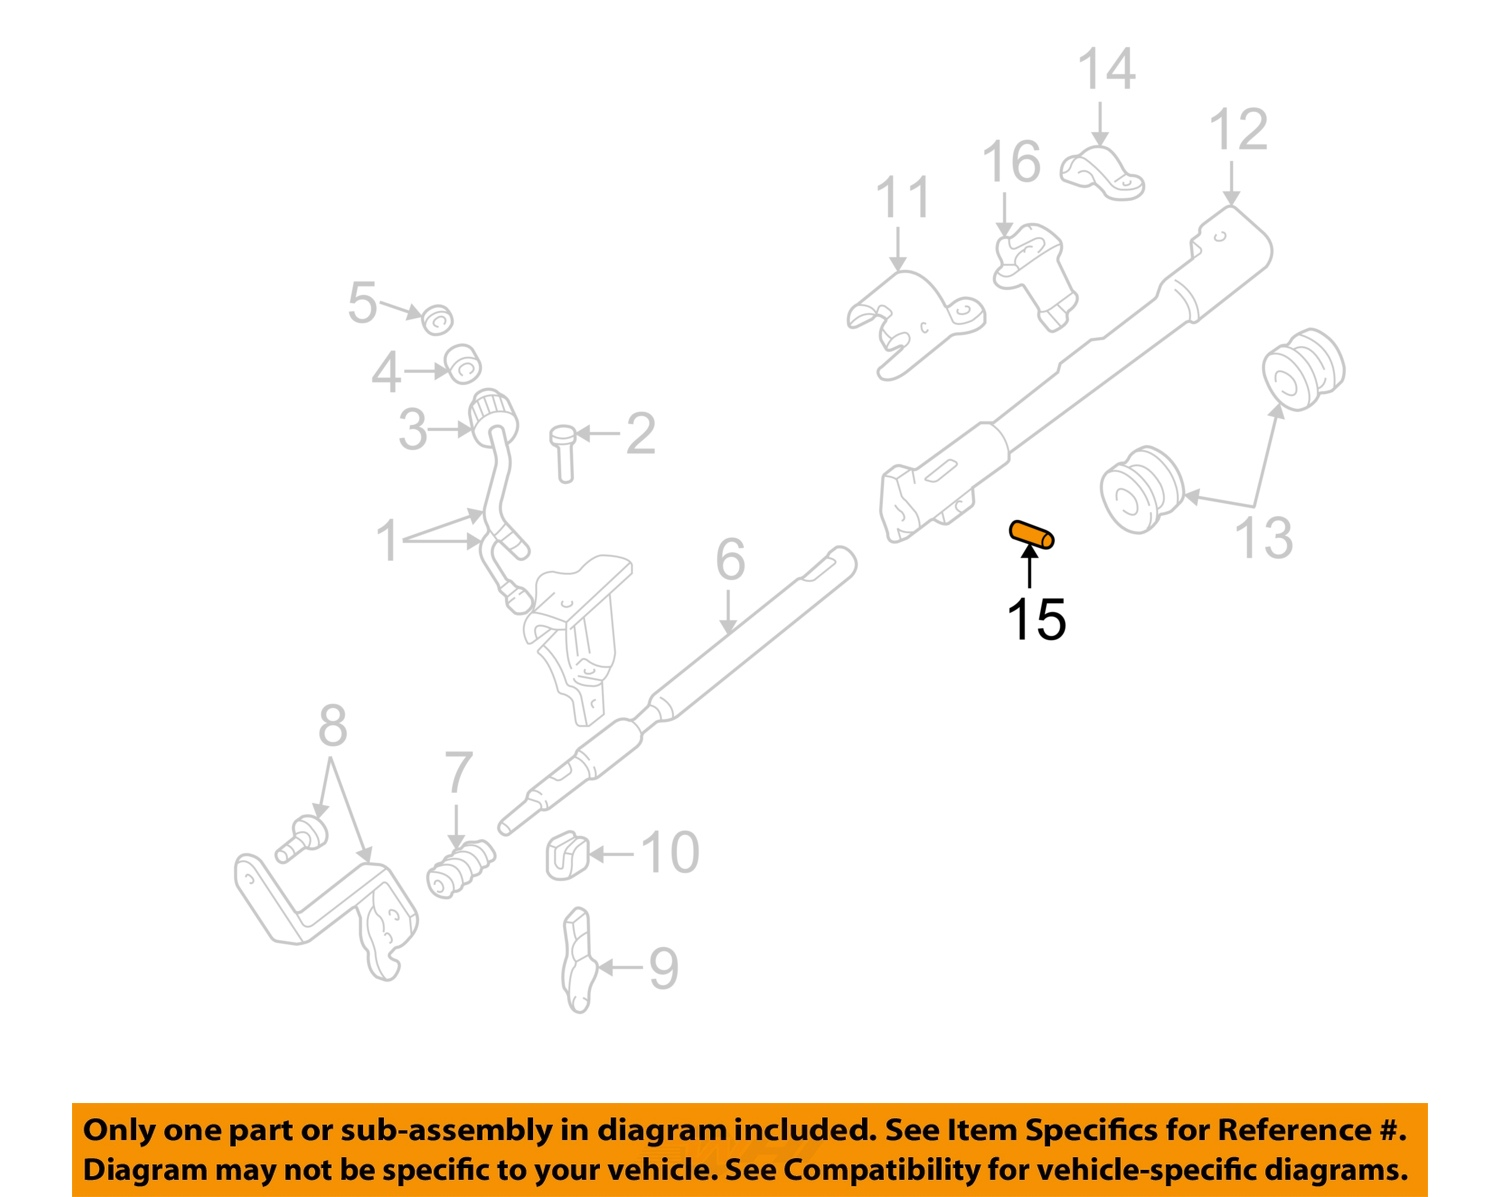 gm steering column parts diagram  u2022 wiring diagram for free